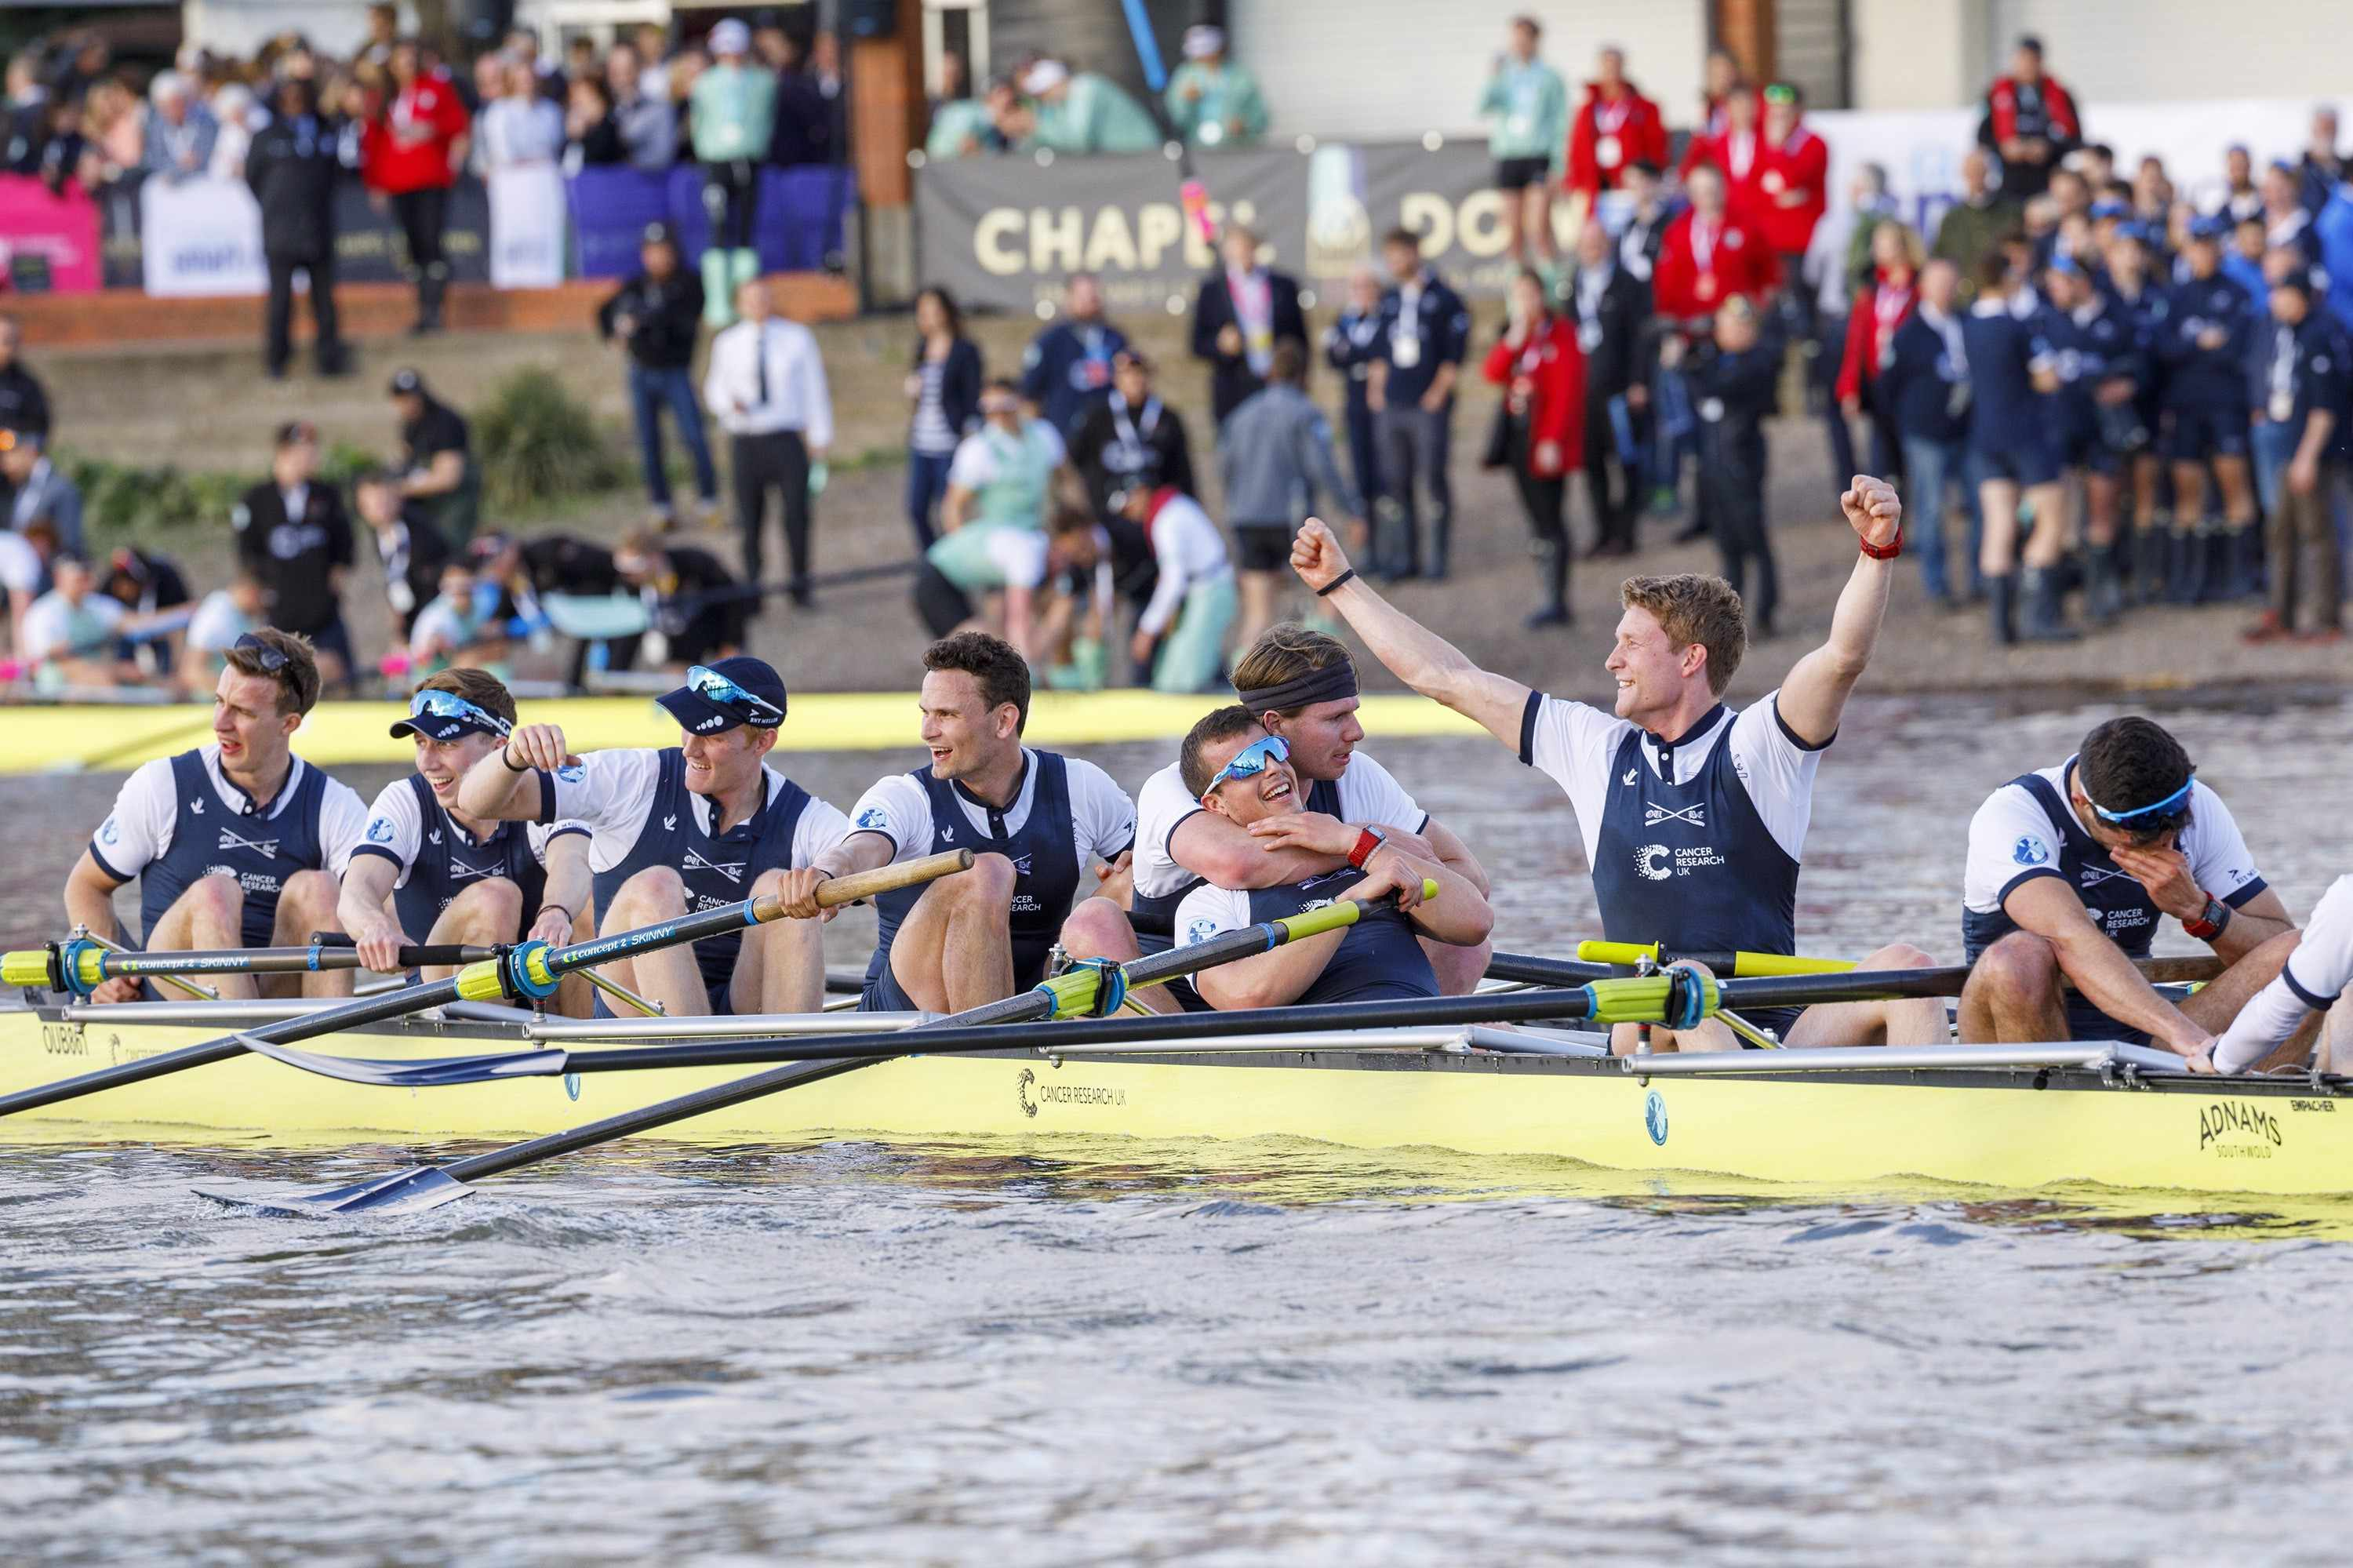 LONDON, UNITED KINGDOM - APRIL 02: The Oxford crew reacts as they win the Cancer Research 163rd Oxford versus Cambridge University Boat Race on the River Thames on April 2, 2017 in London, England. (Photo by Tolga Akmen/Anadolu Agency/Getty Images)  Getty, TL